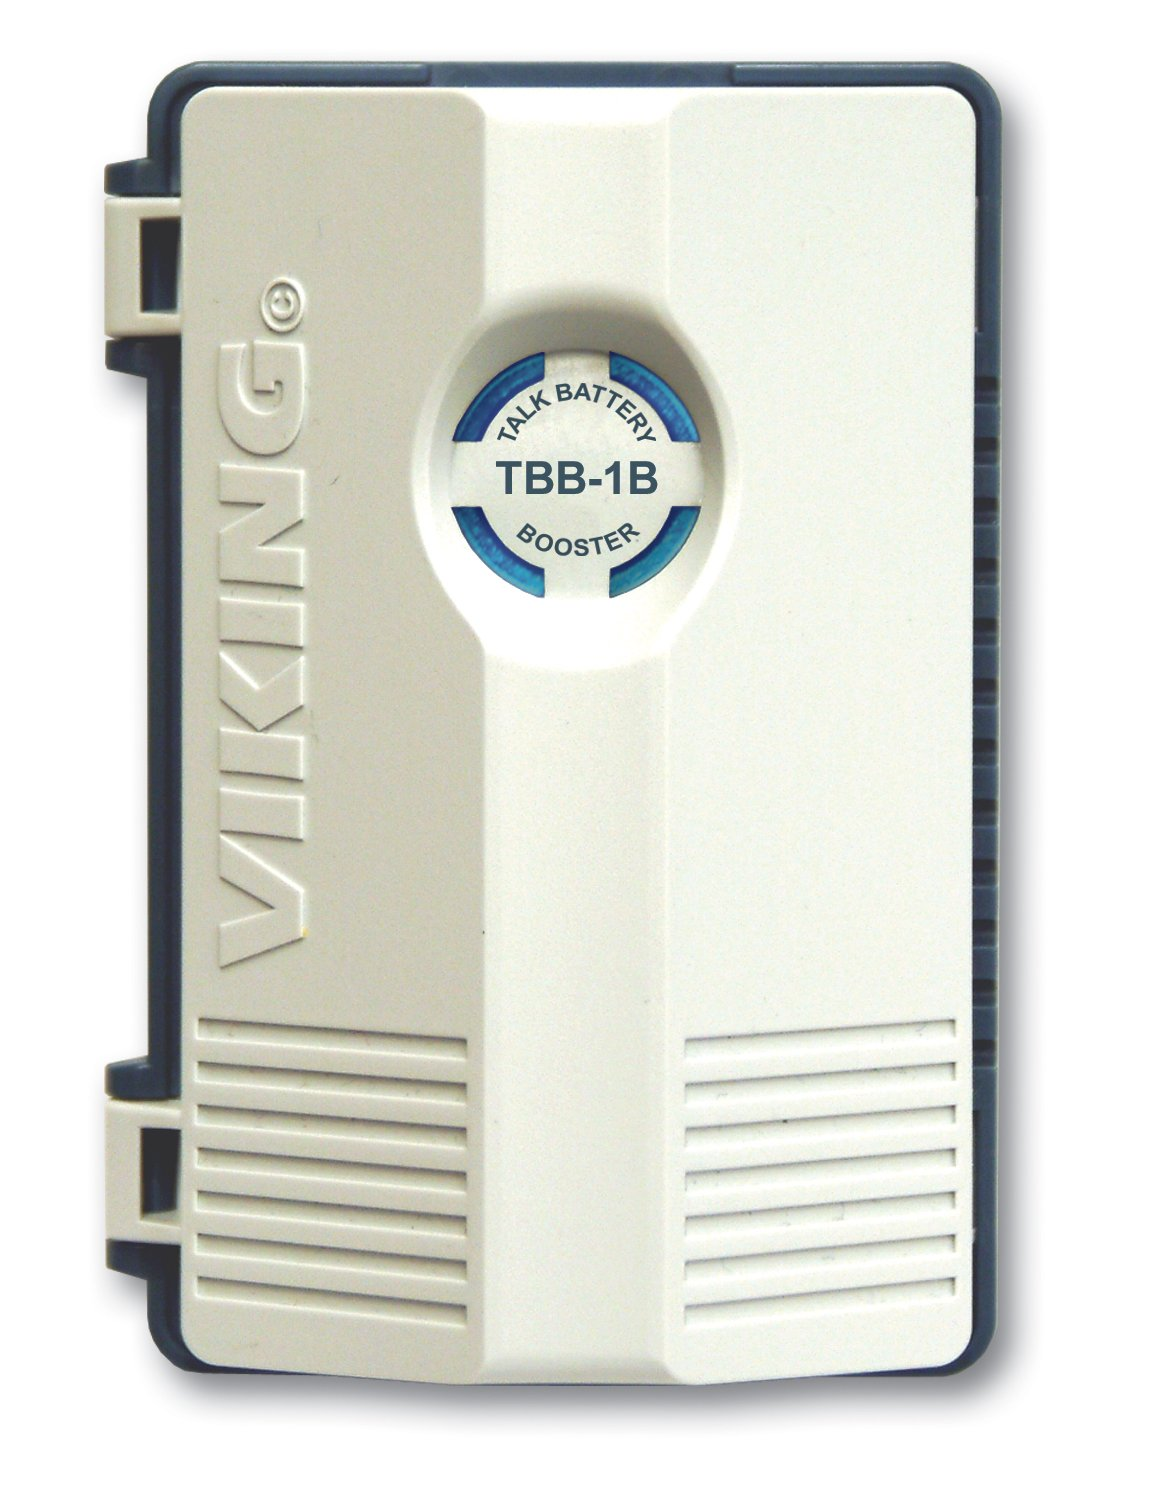 Talk Battery Booster-Installation Equipment-Viking Accessories-Viking Electronic